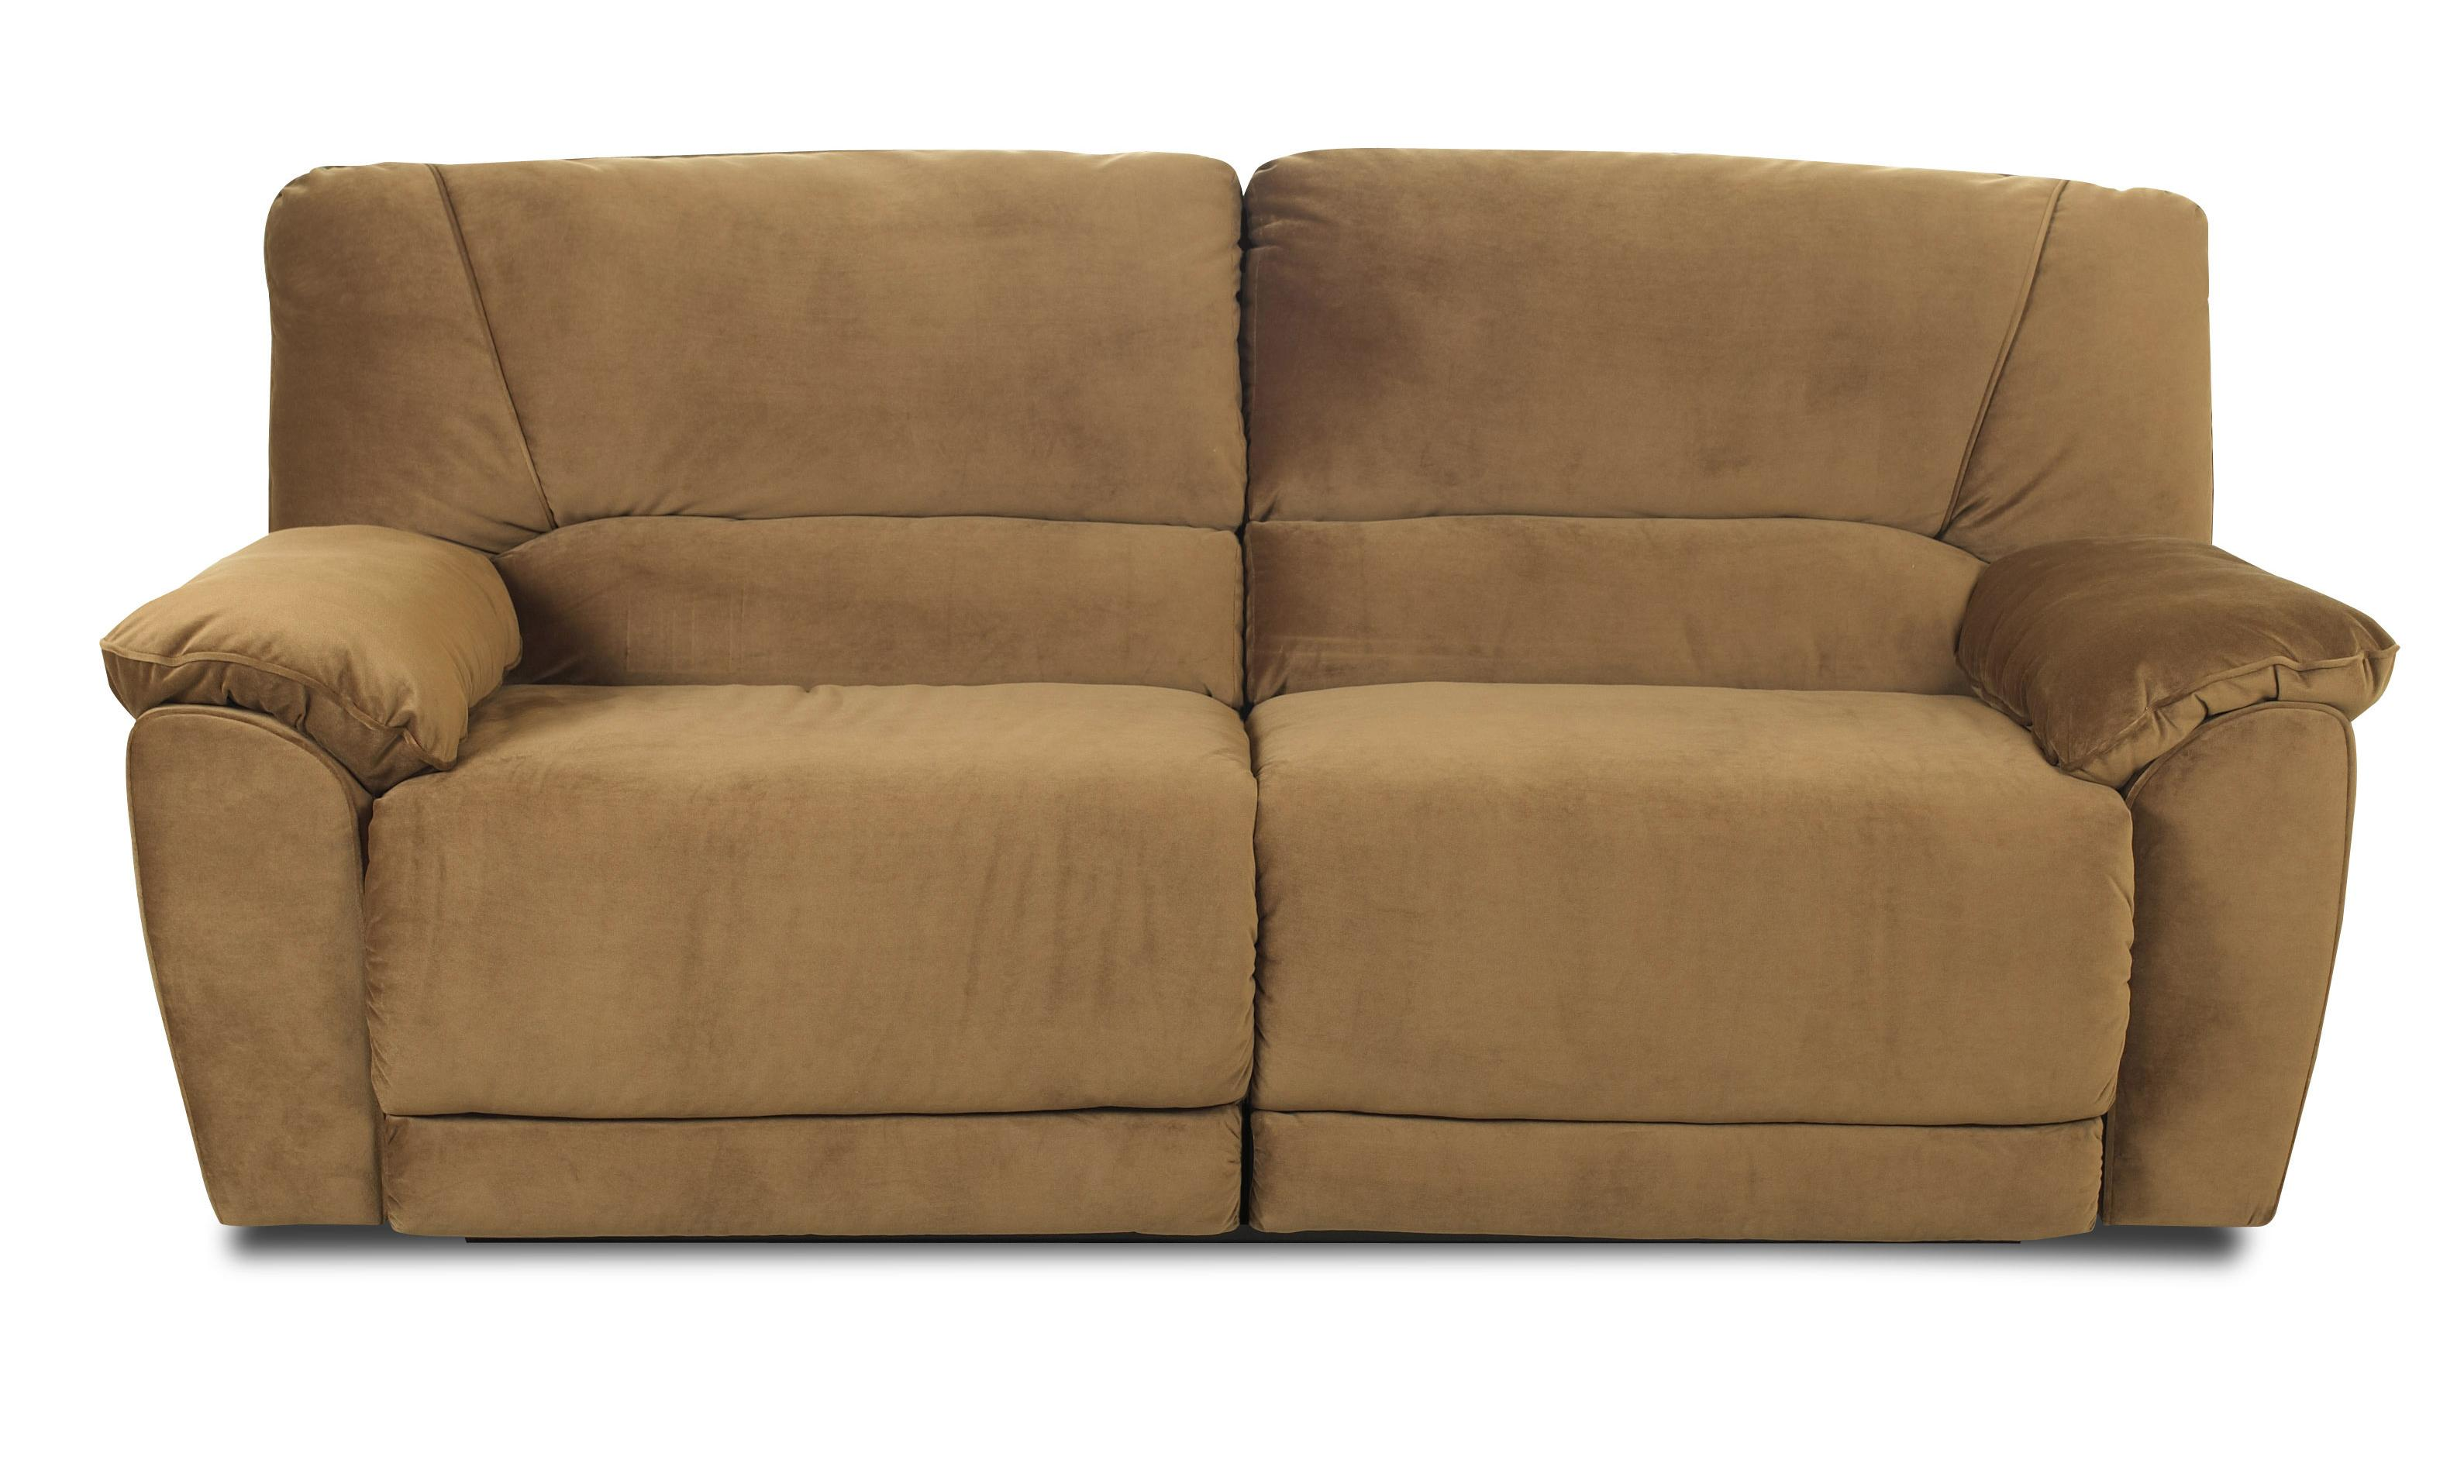 Klaussner Laredo  Reclining Sofa - Item Number: 57903 RS